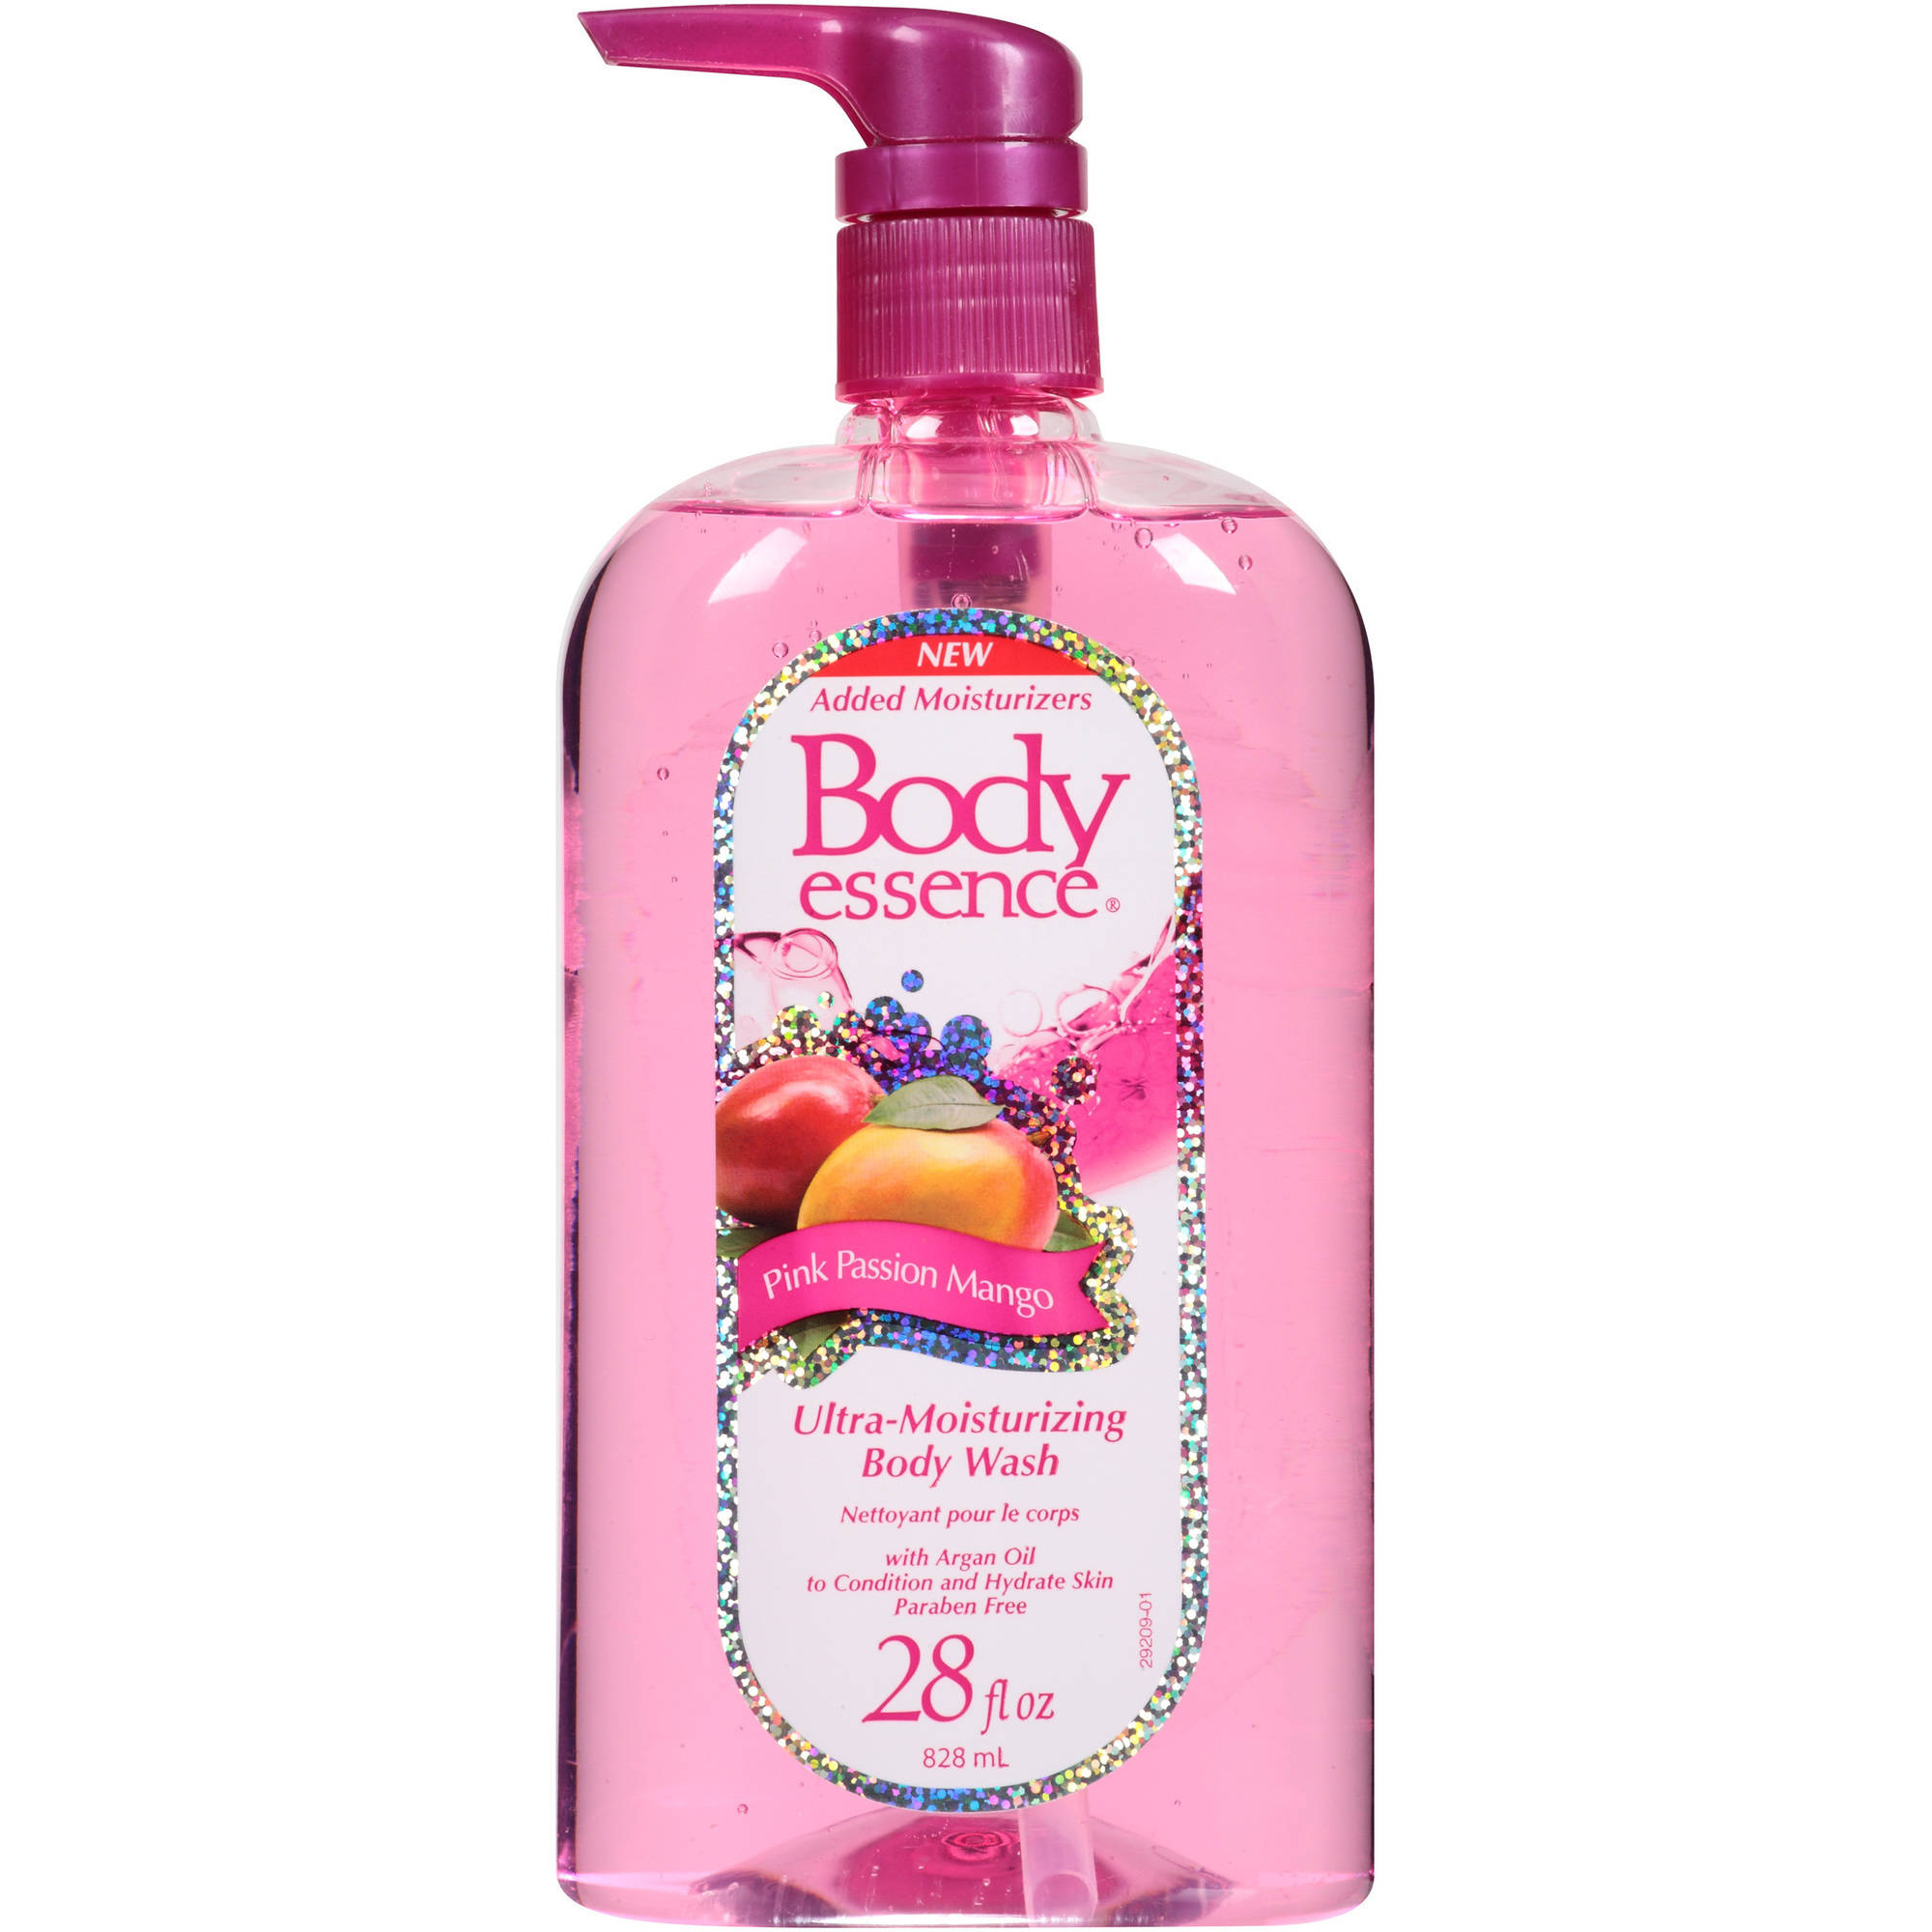 Body Essence Pink Passion Mango Ultra-Moisturizing Body Wash, 28 fl oz